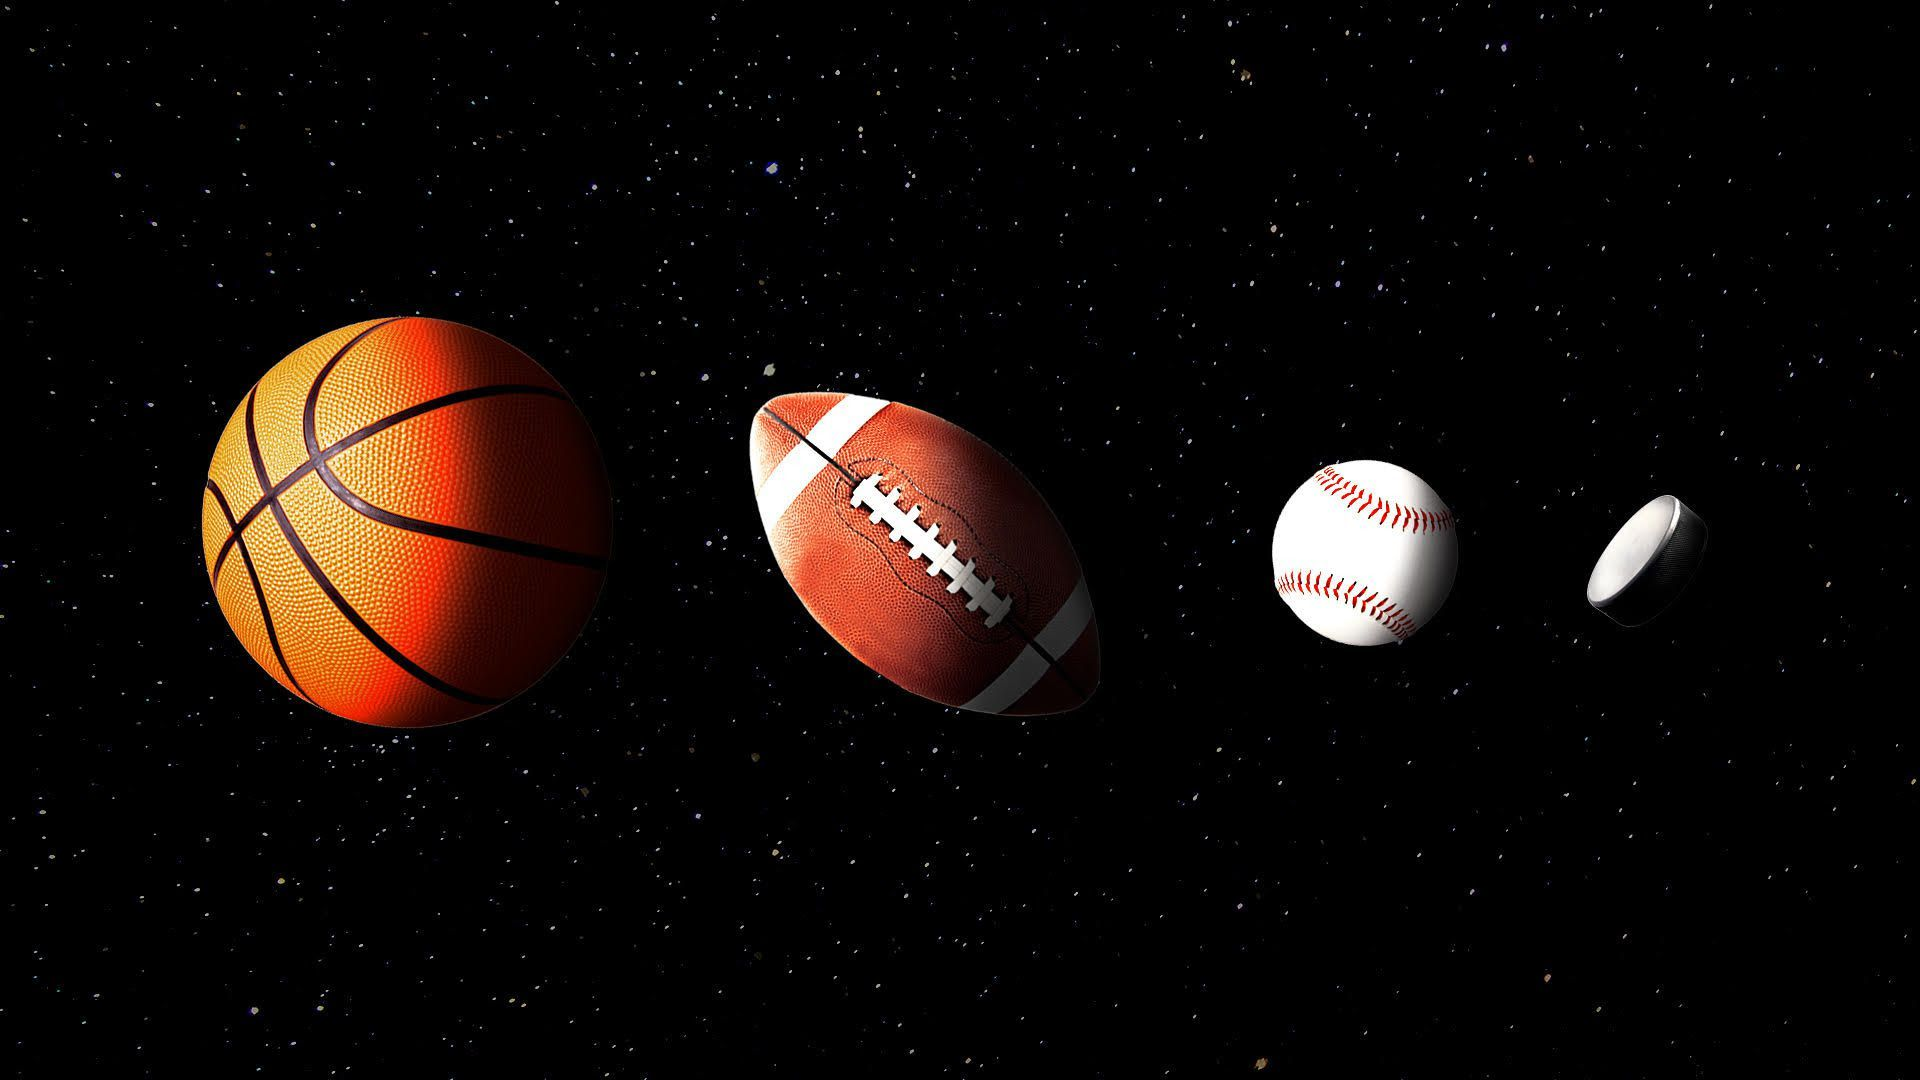 An illustration of a hockey puck, baseball, football and basketball all aligning like planets in space